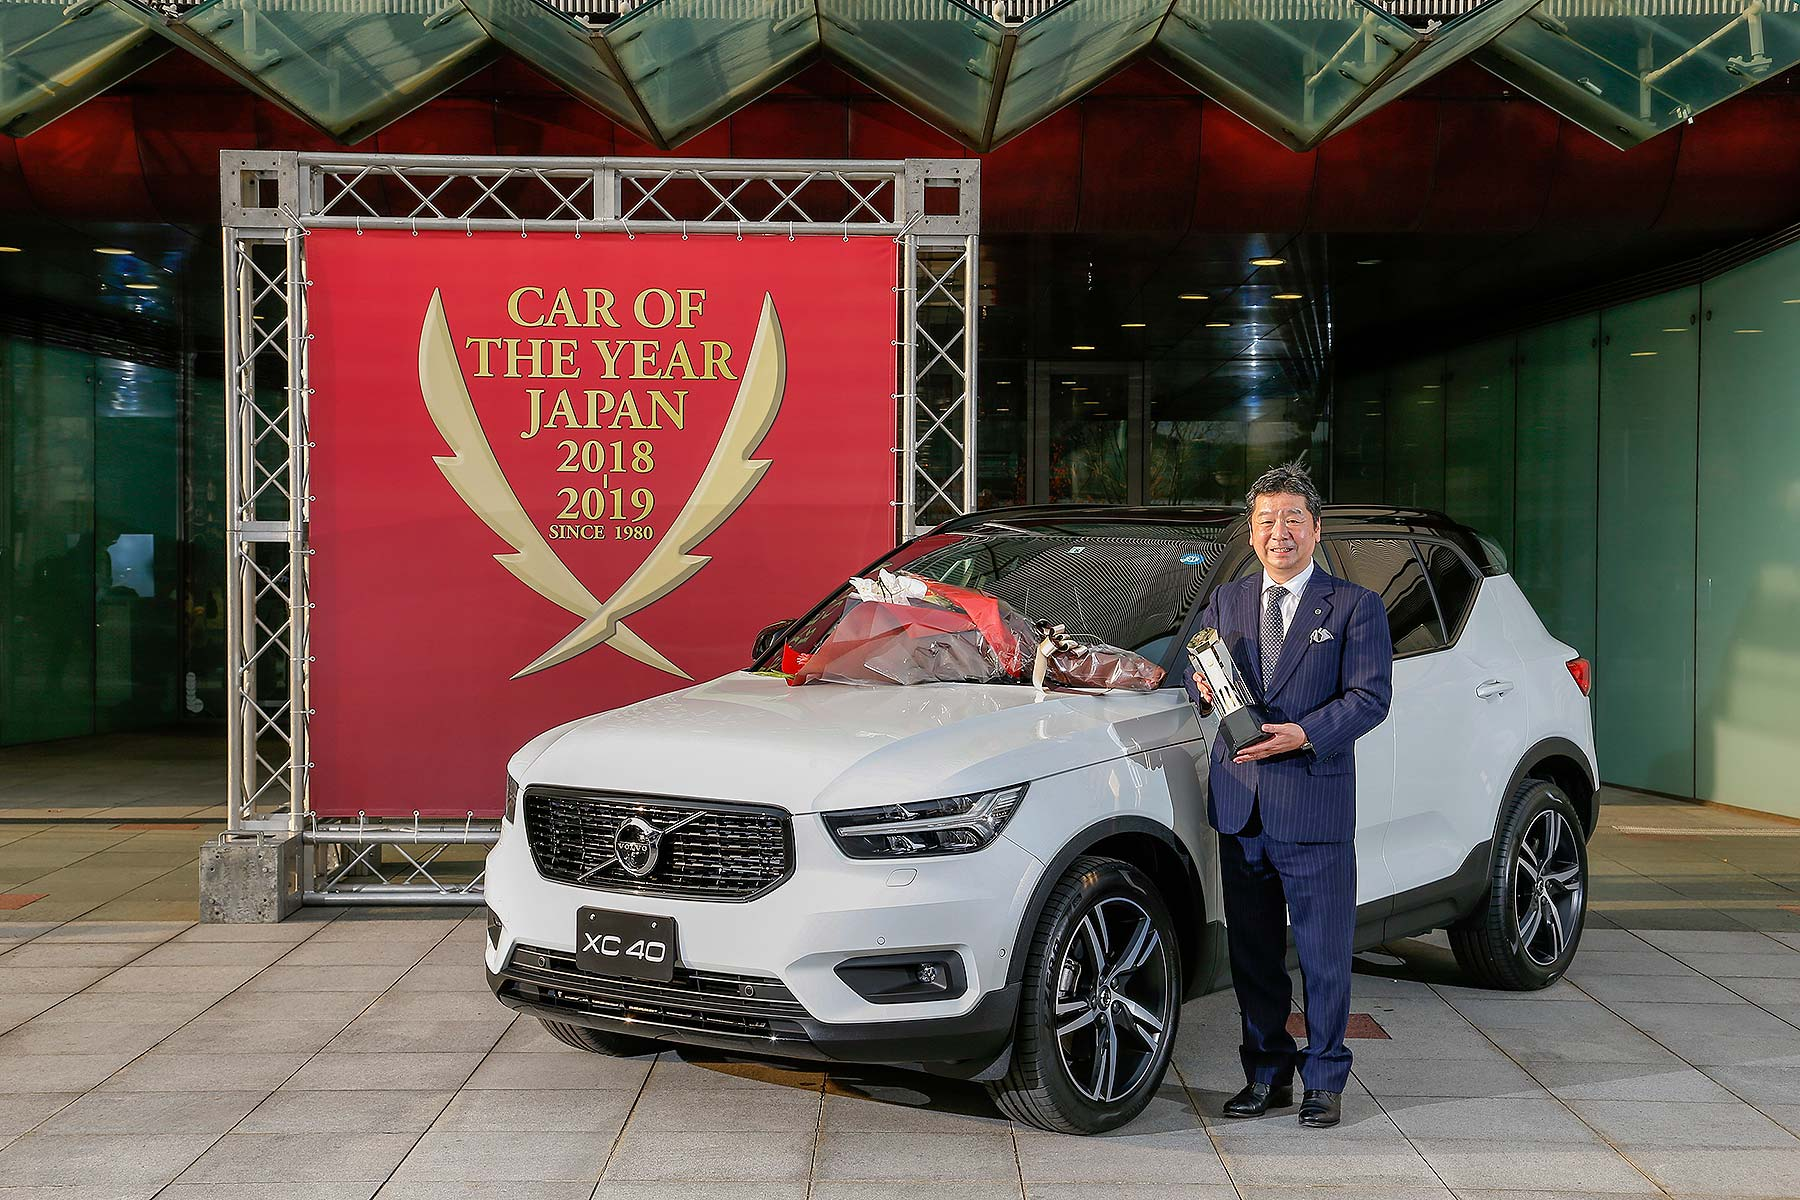 Volvo XC40 is Car of the Year Japan 2018